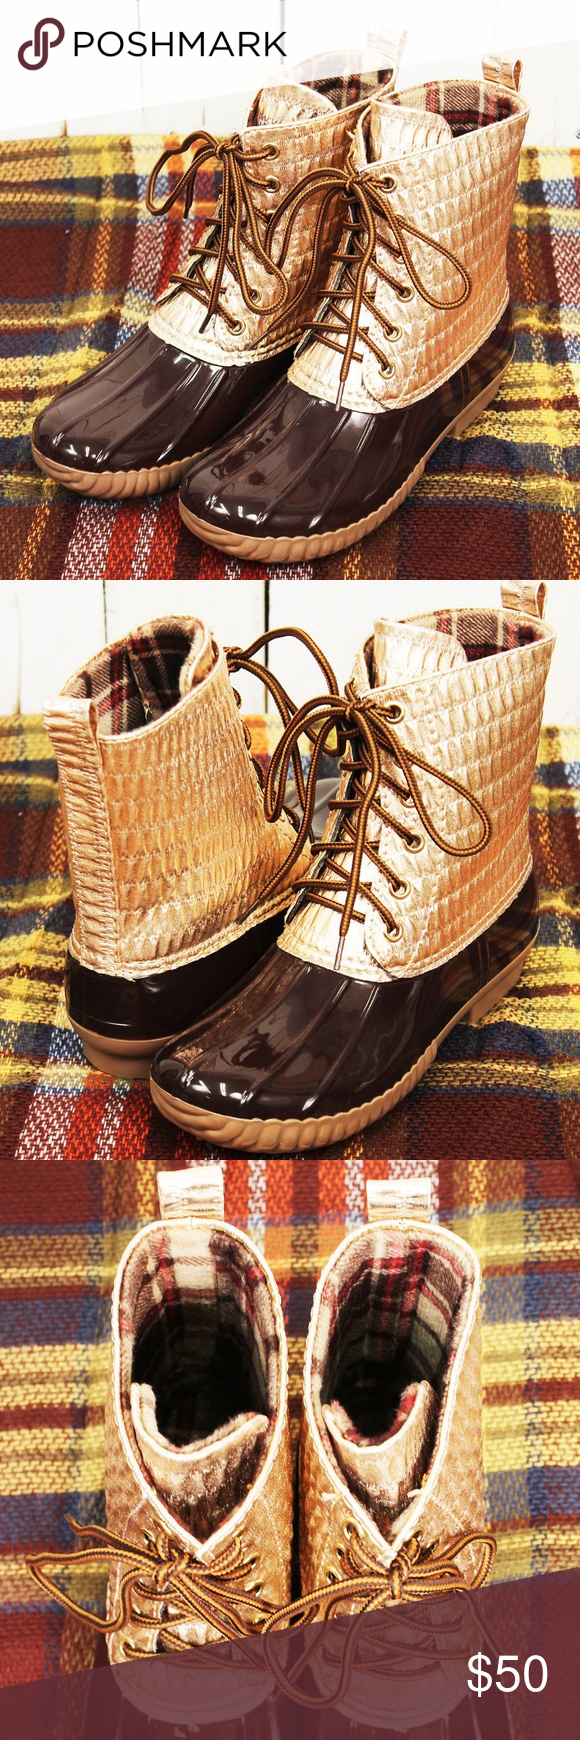 7a54cae17836 Pleated Metallic Duck Boots (RUNS SMALL)  New Boutique Item  When the  weather is bad